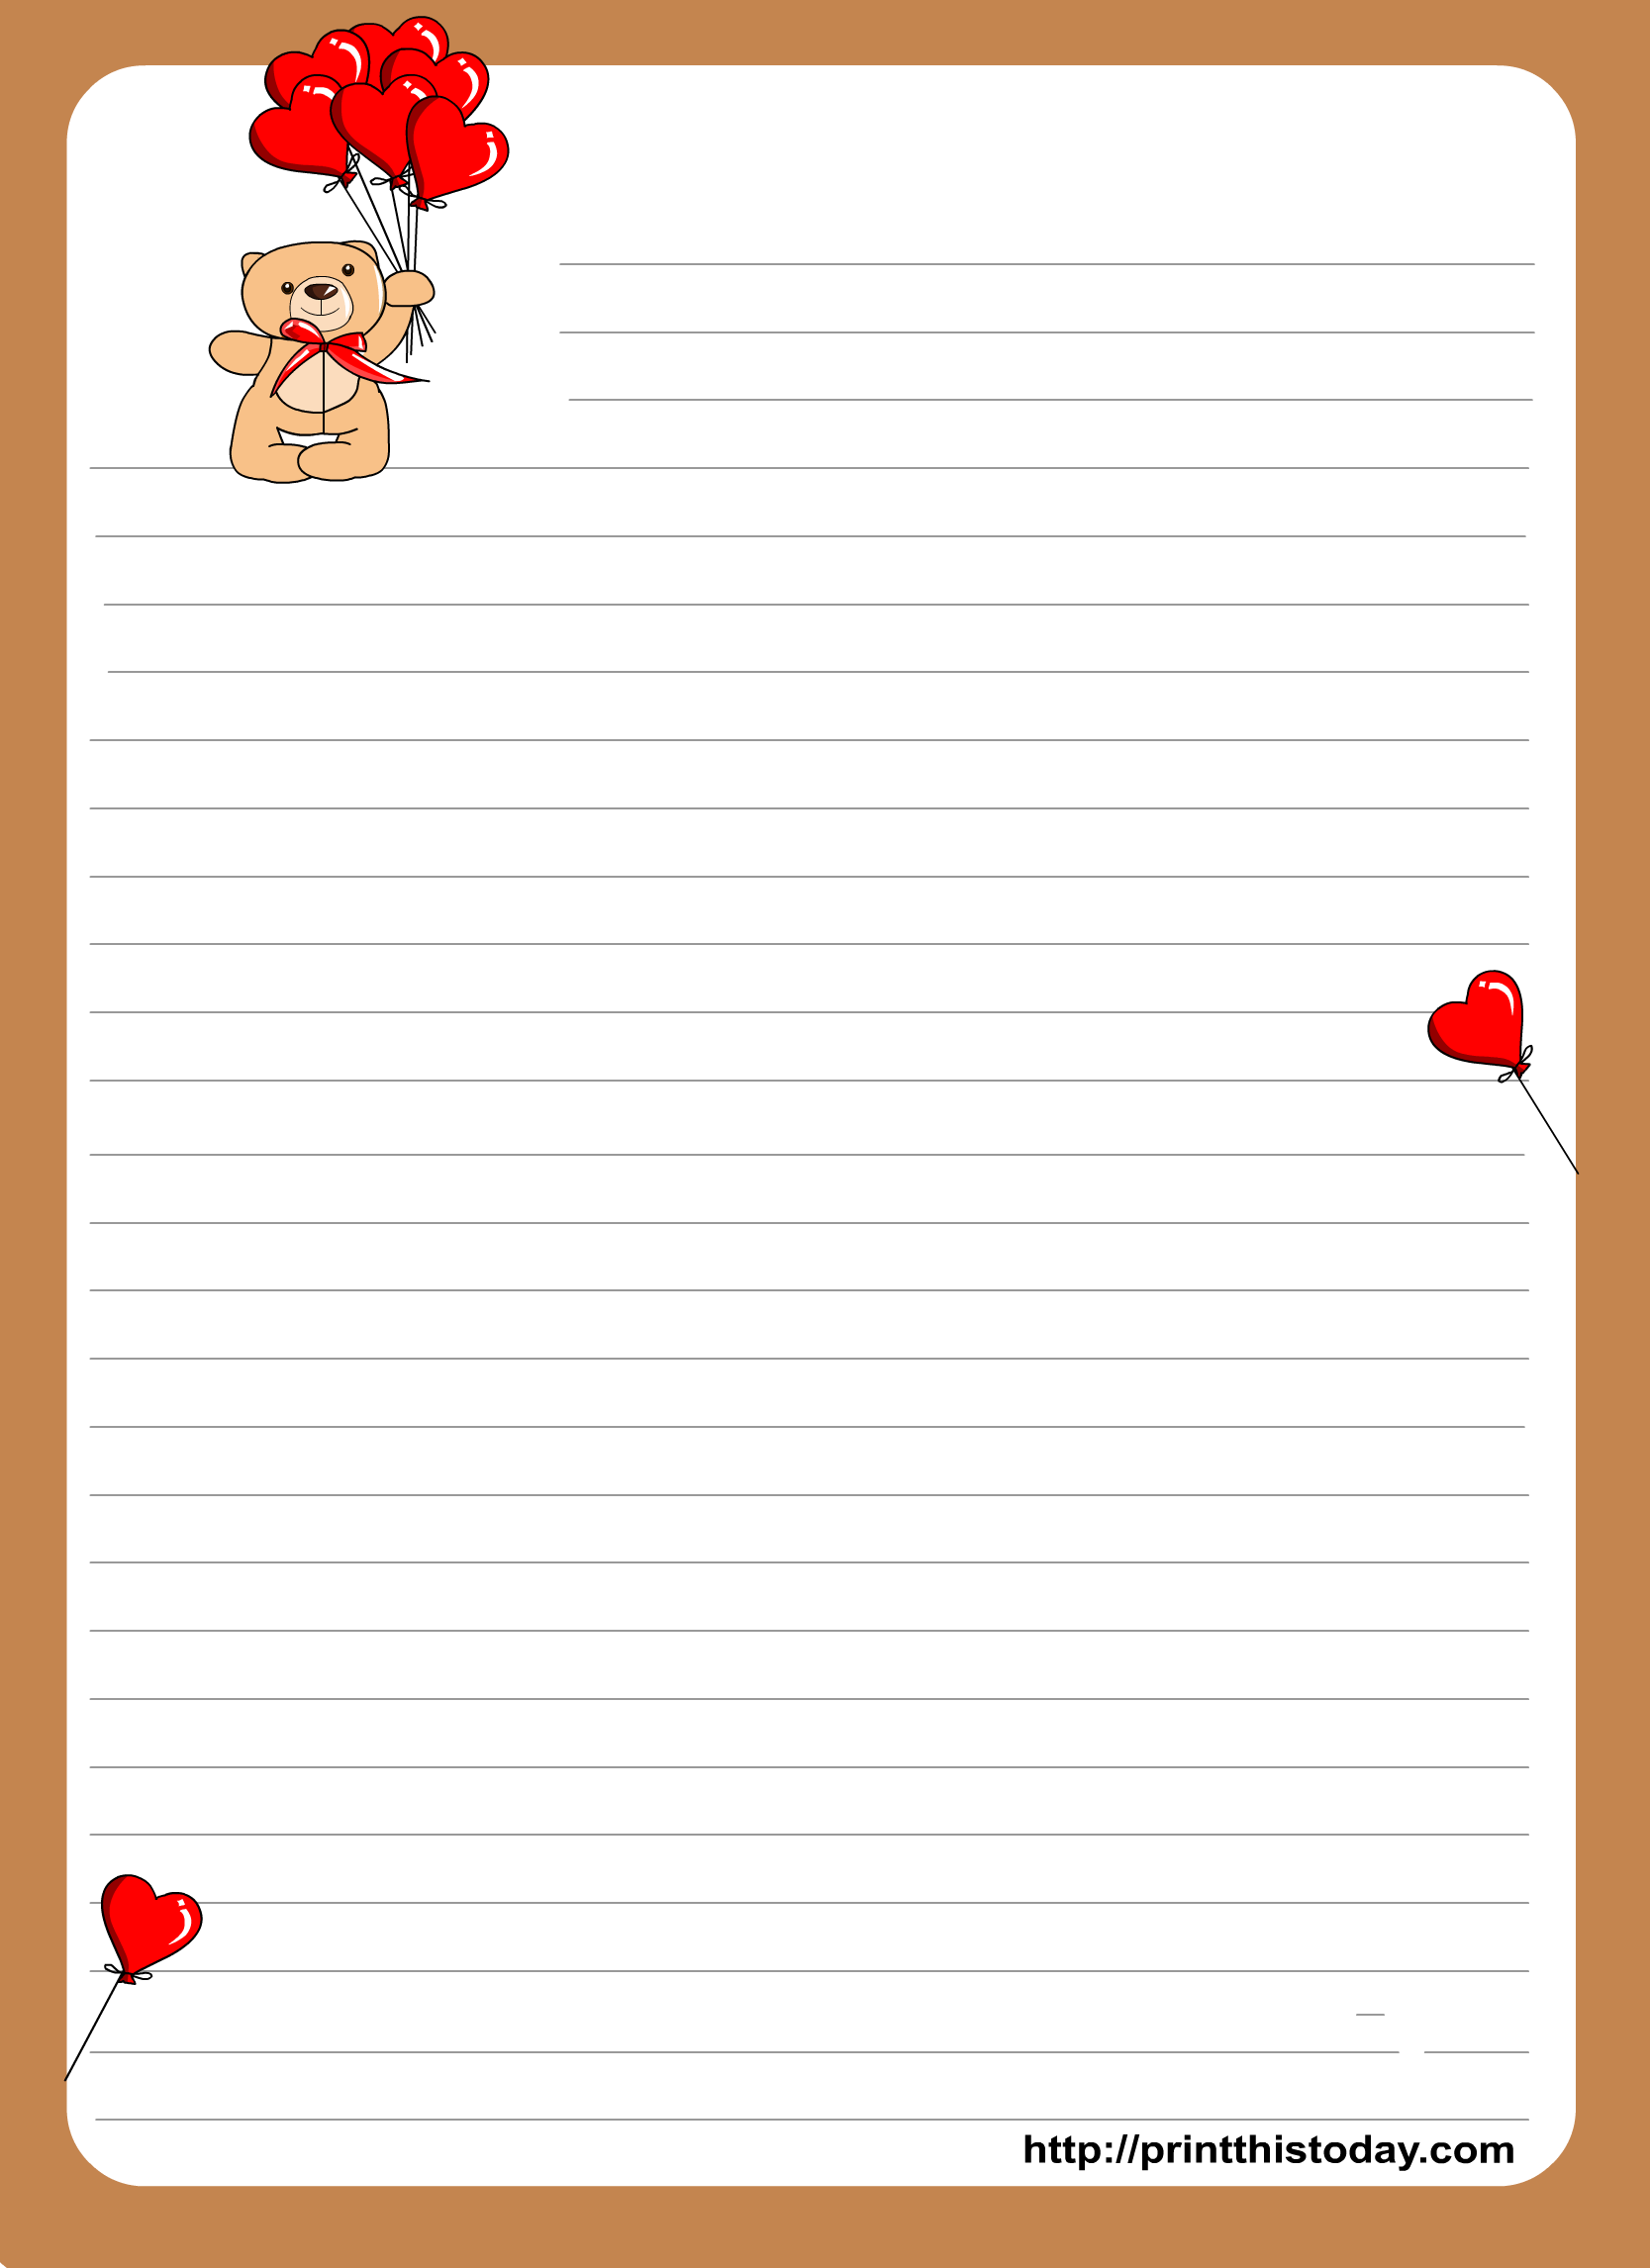 birthday writing paper personalised relations happy birthday card  teddy bear writing paper for kids letter pad stationery design teddy bear holding balloons